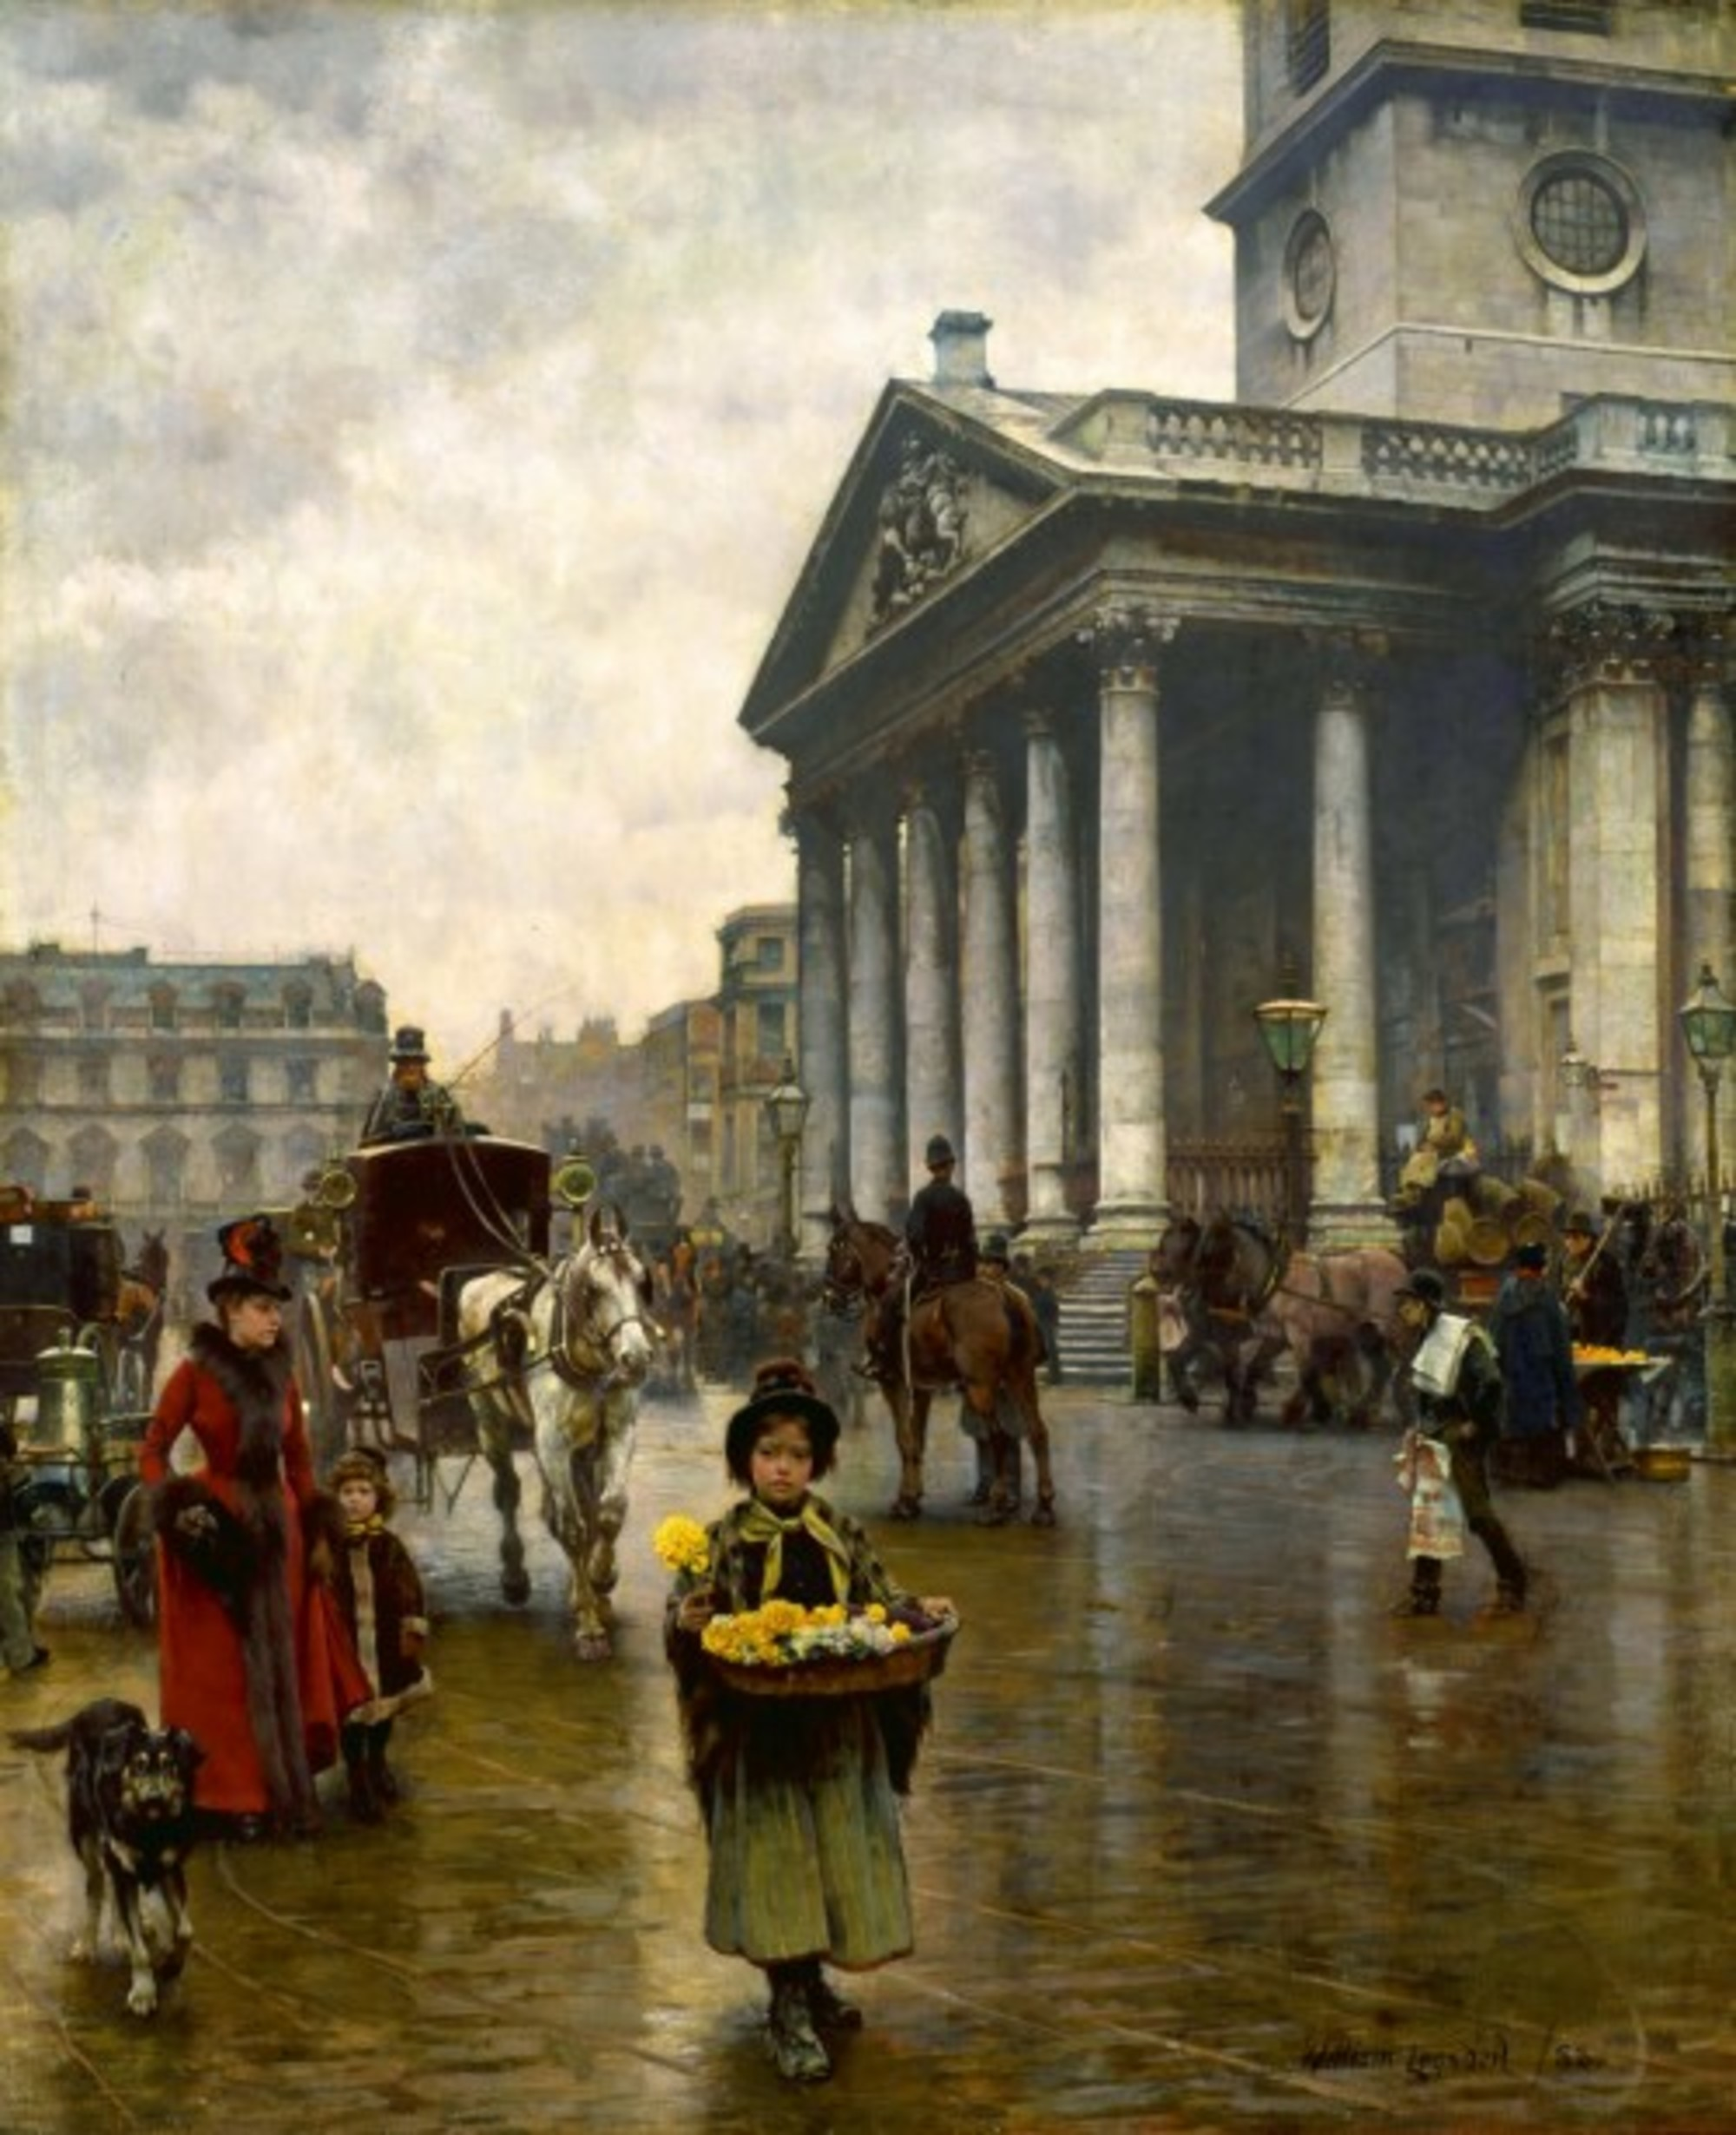 William-Logsdail---St-Martin-in-the-Fields-Tate-Britain.jpg